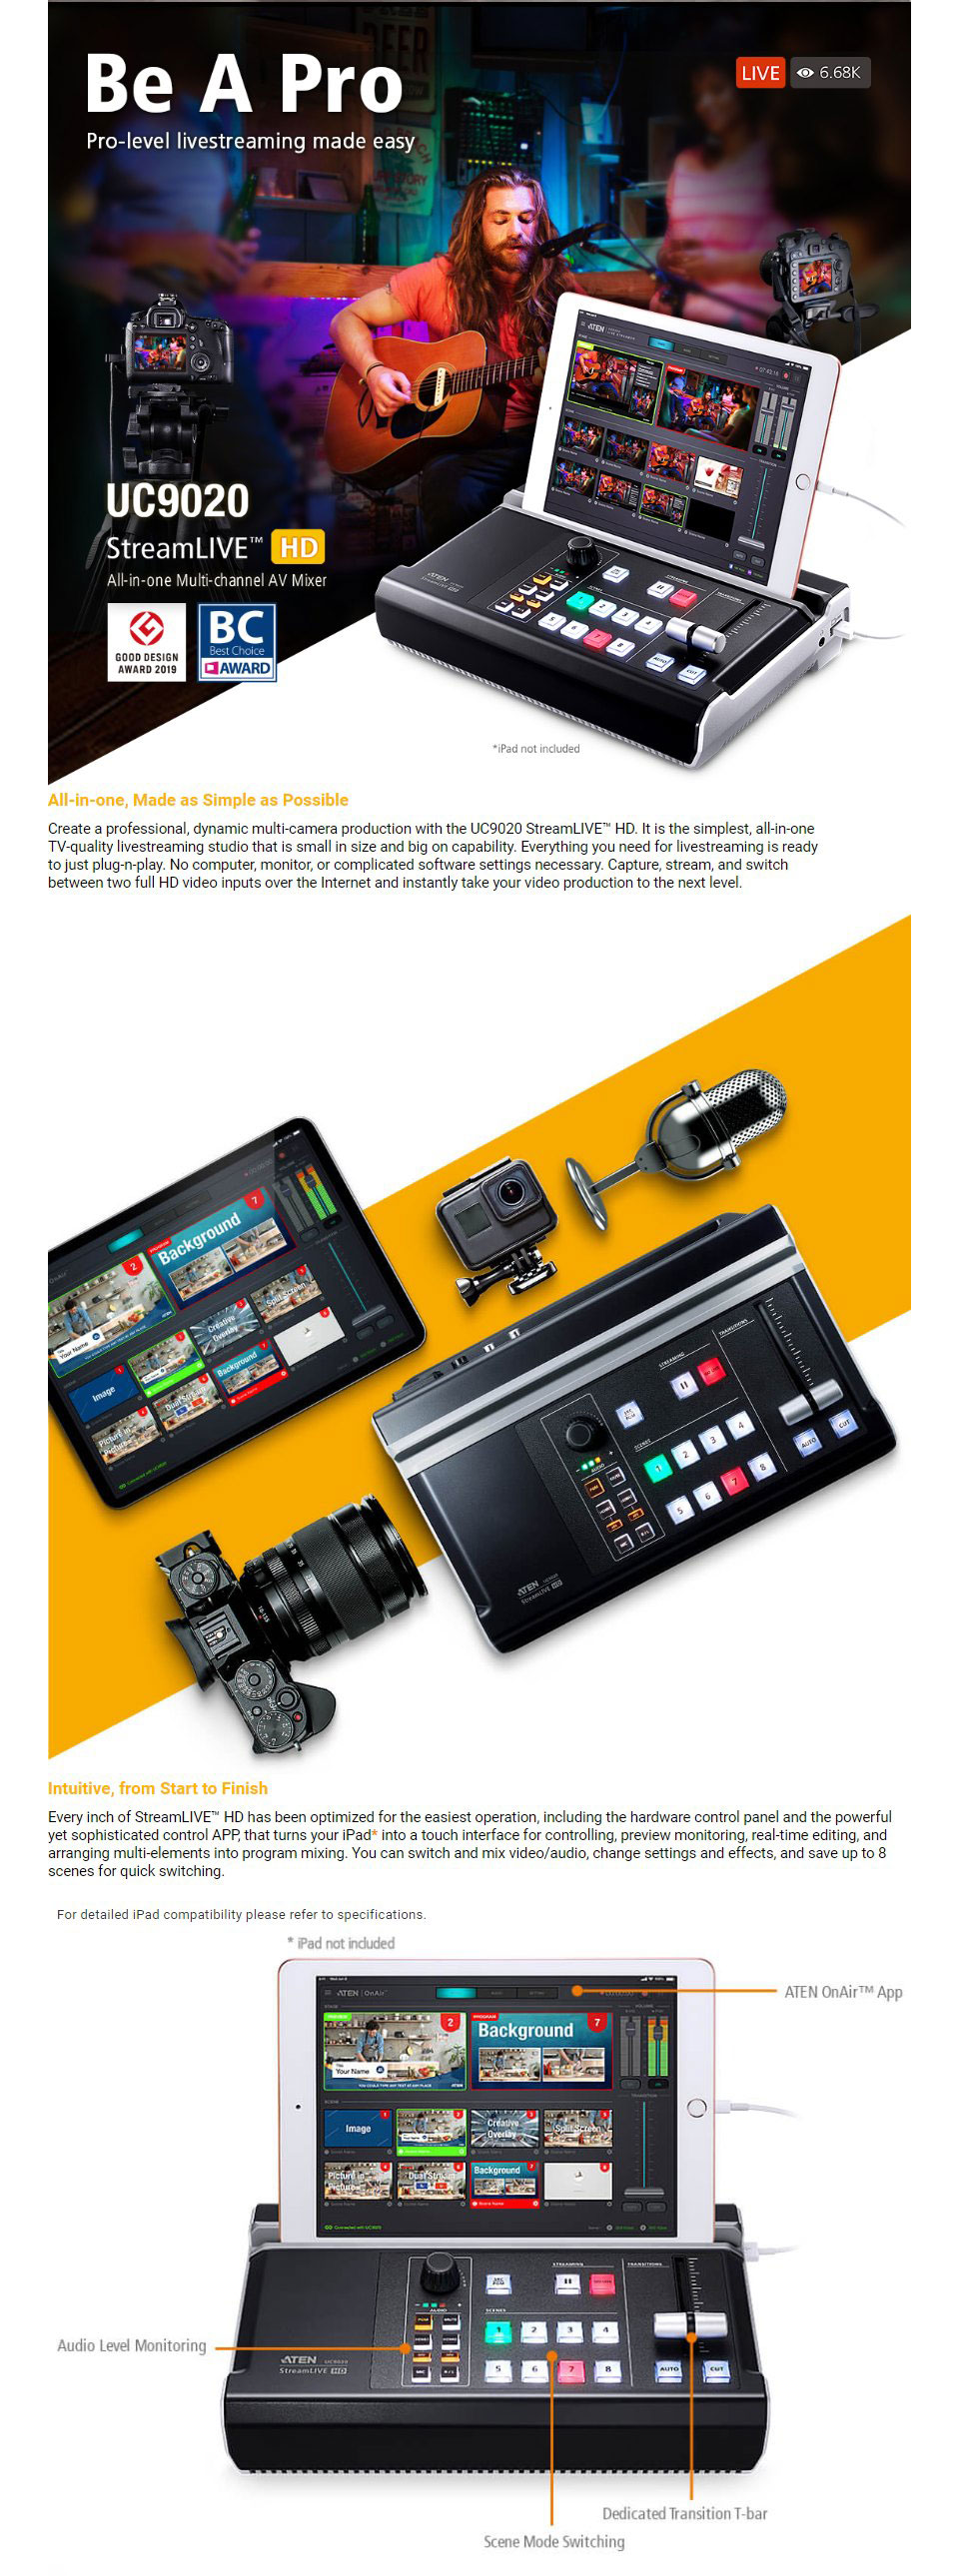 ATEN UC9020 StreamLive HD All-In-One Multi-channel AV Mixer features